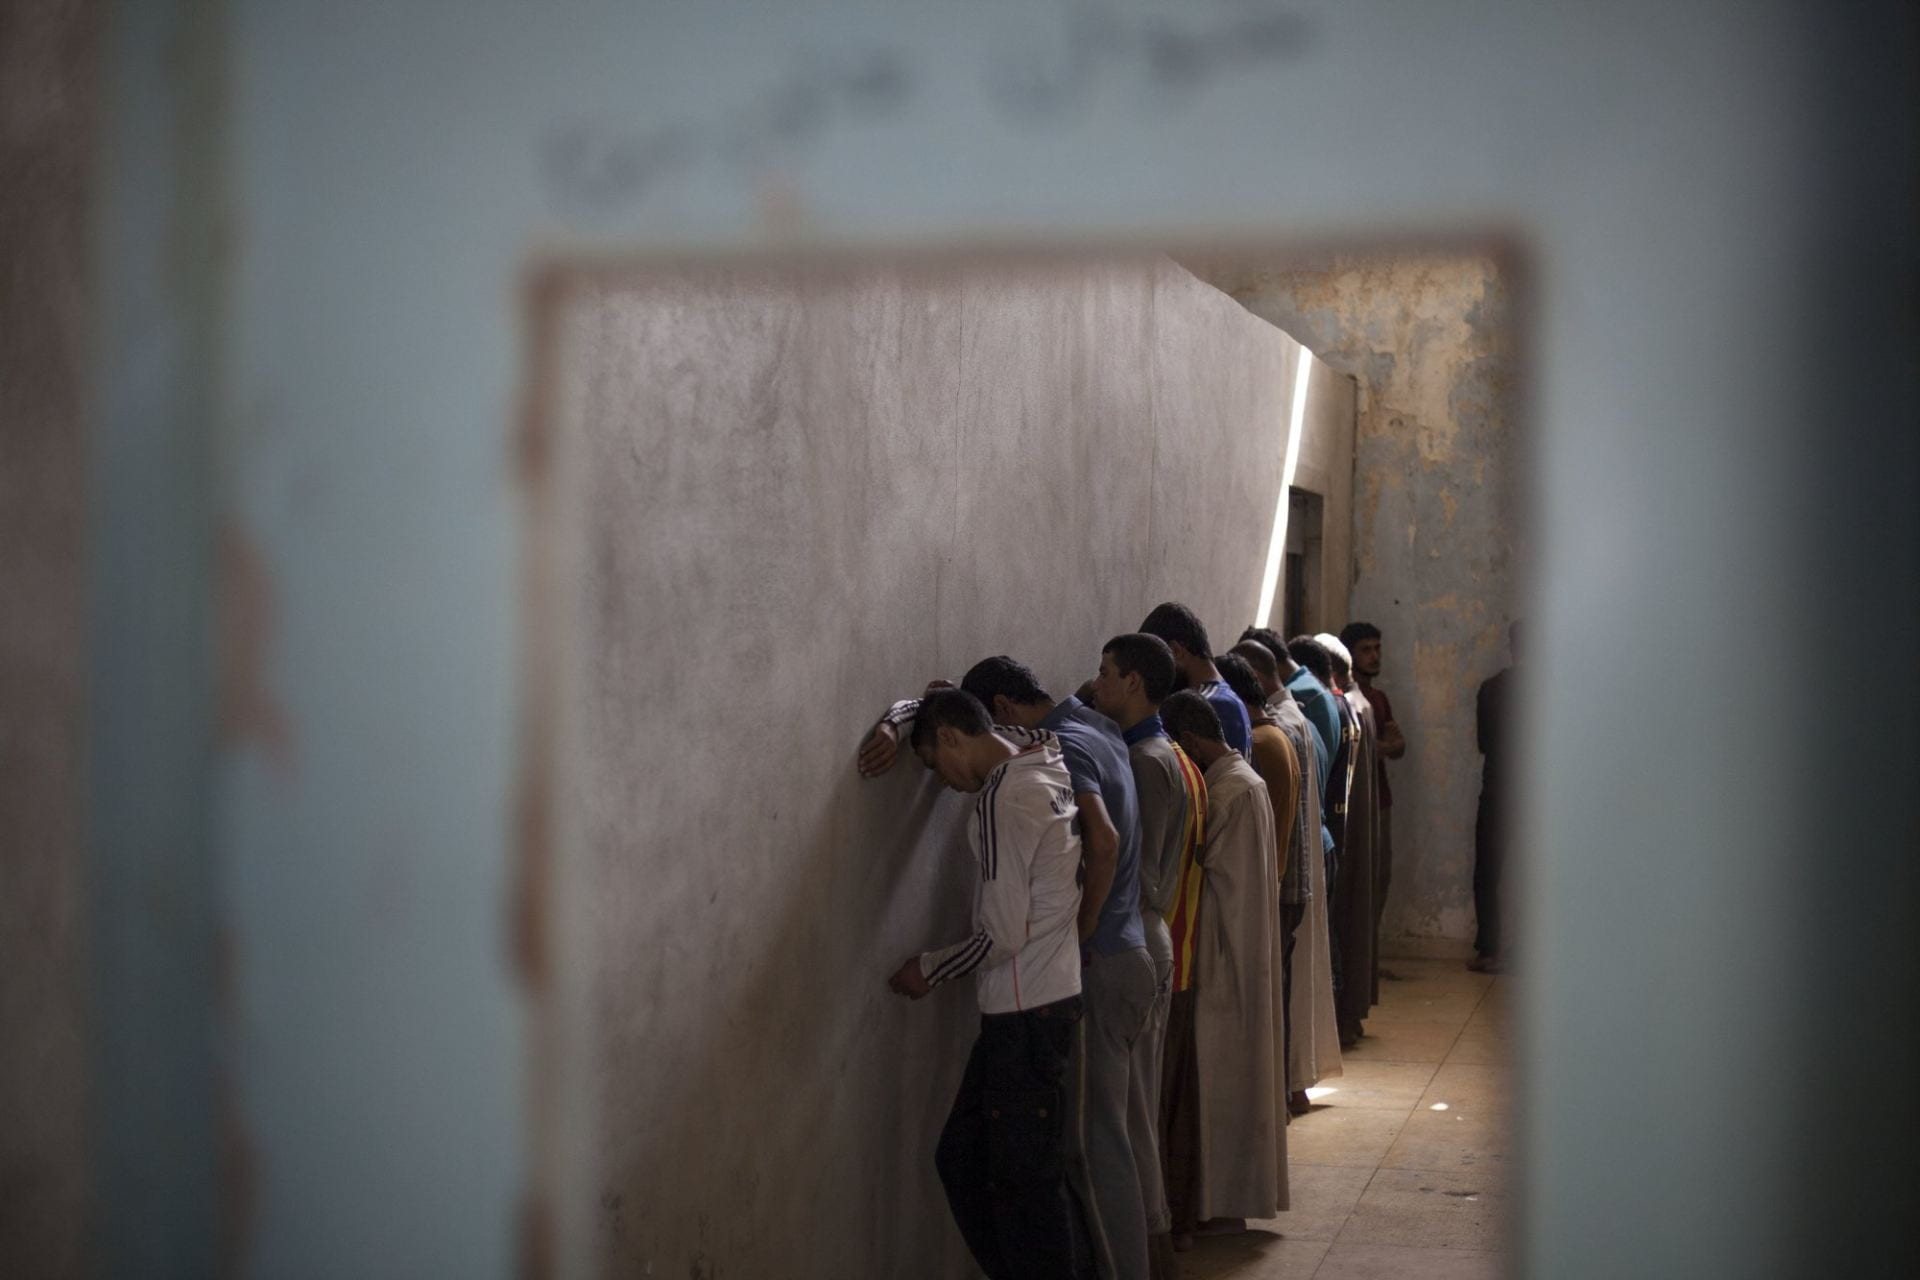 Arrested child suspects line a corridor, awaiting response from the police